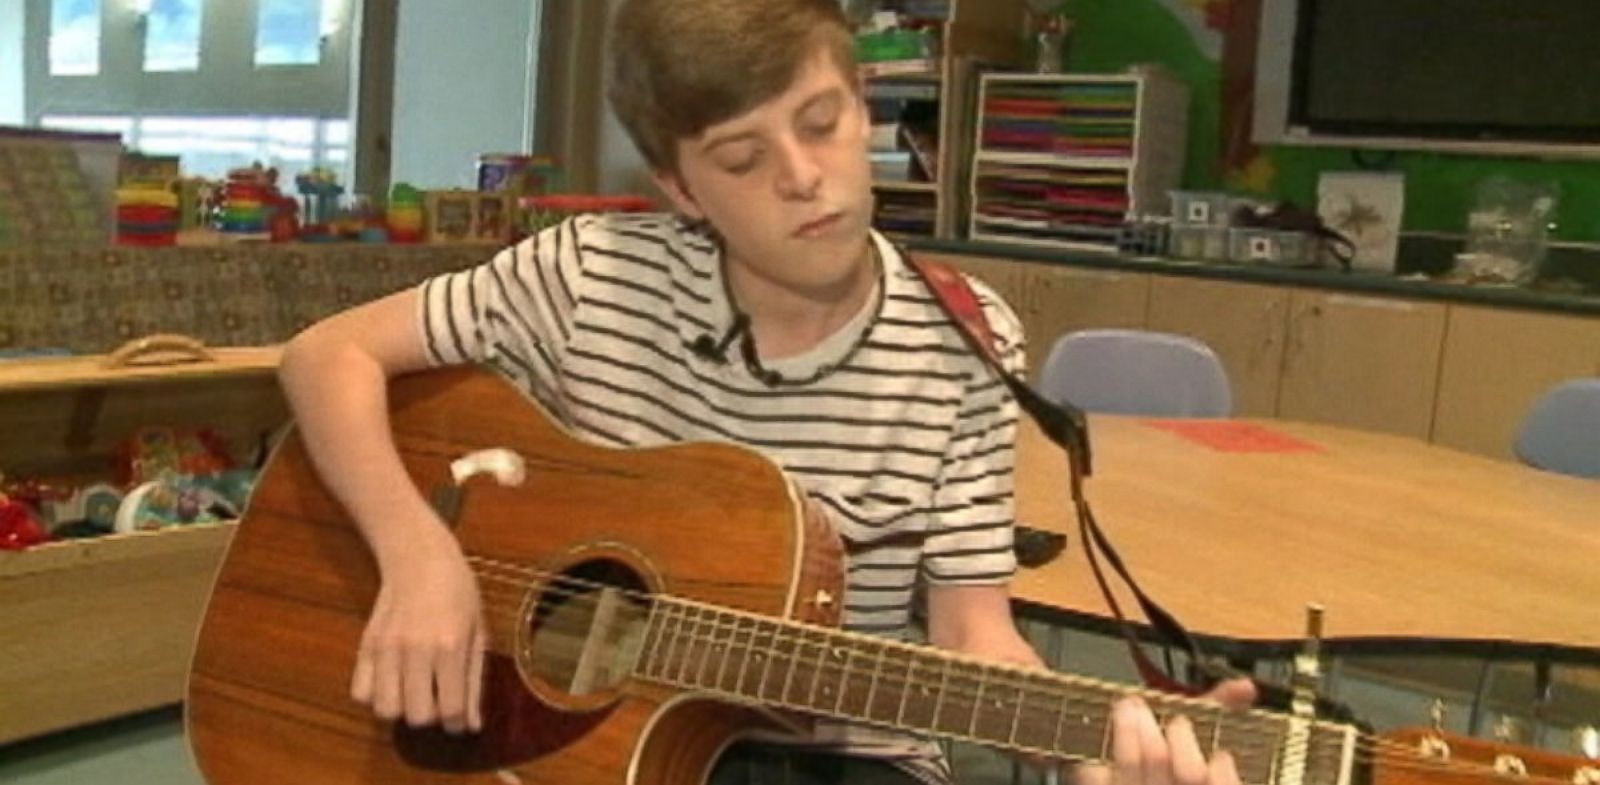 PHOTO: A Raceland teen who was born with a cleft palate is singing - something doctors said would not be possible.